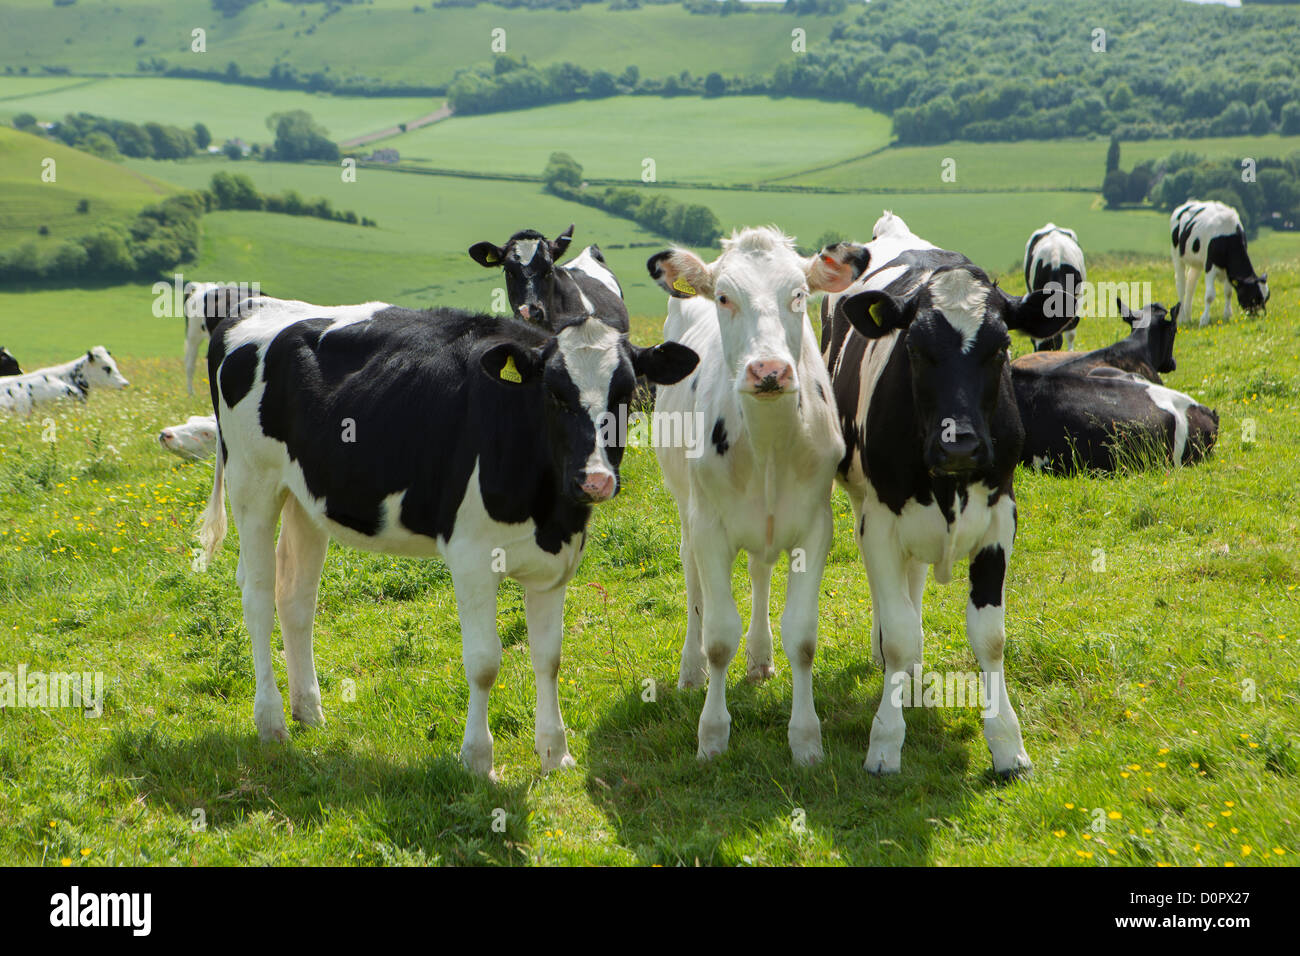 Cattle in a field near the Dorset Gap, Dorset, England, UK - Stock Image